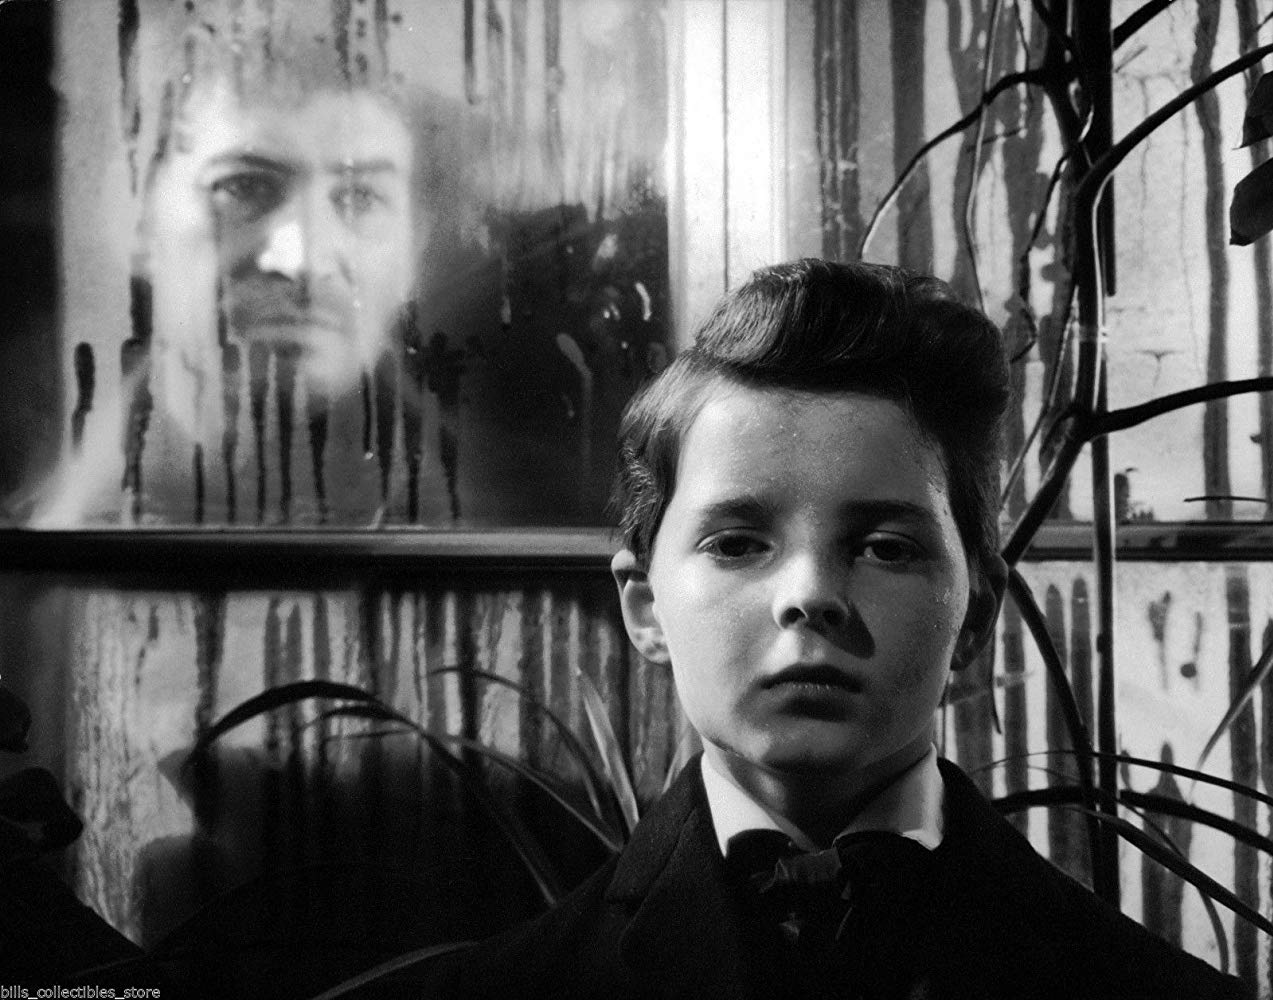 Miles (Martin Stephens) and the ghost of Quint (Peter Wyngarde) in The Innocents (1961)